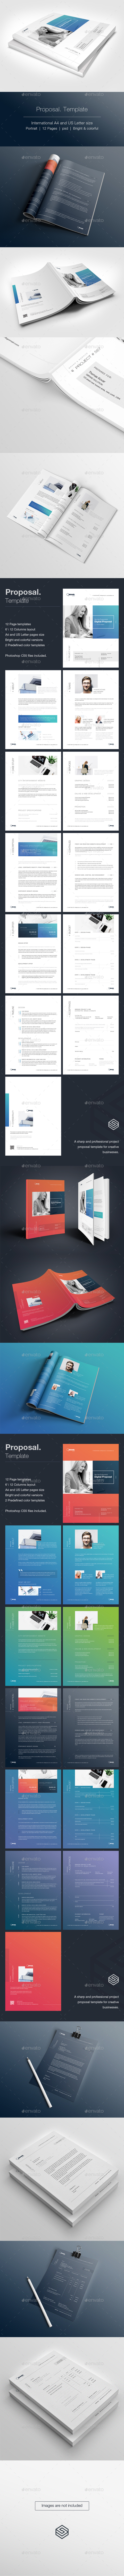 GraphicRiver Proposal Template 20738877